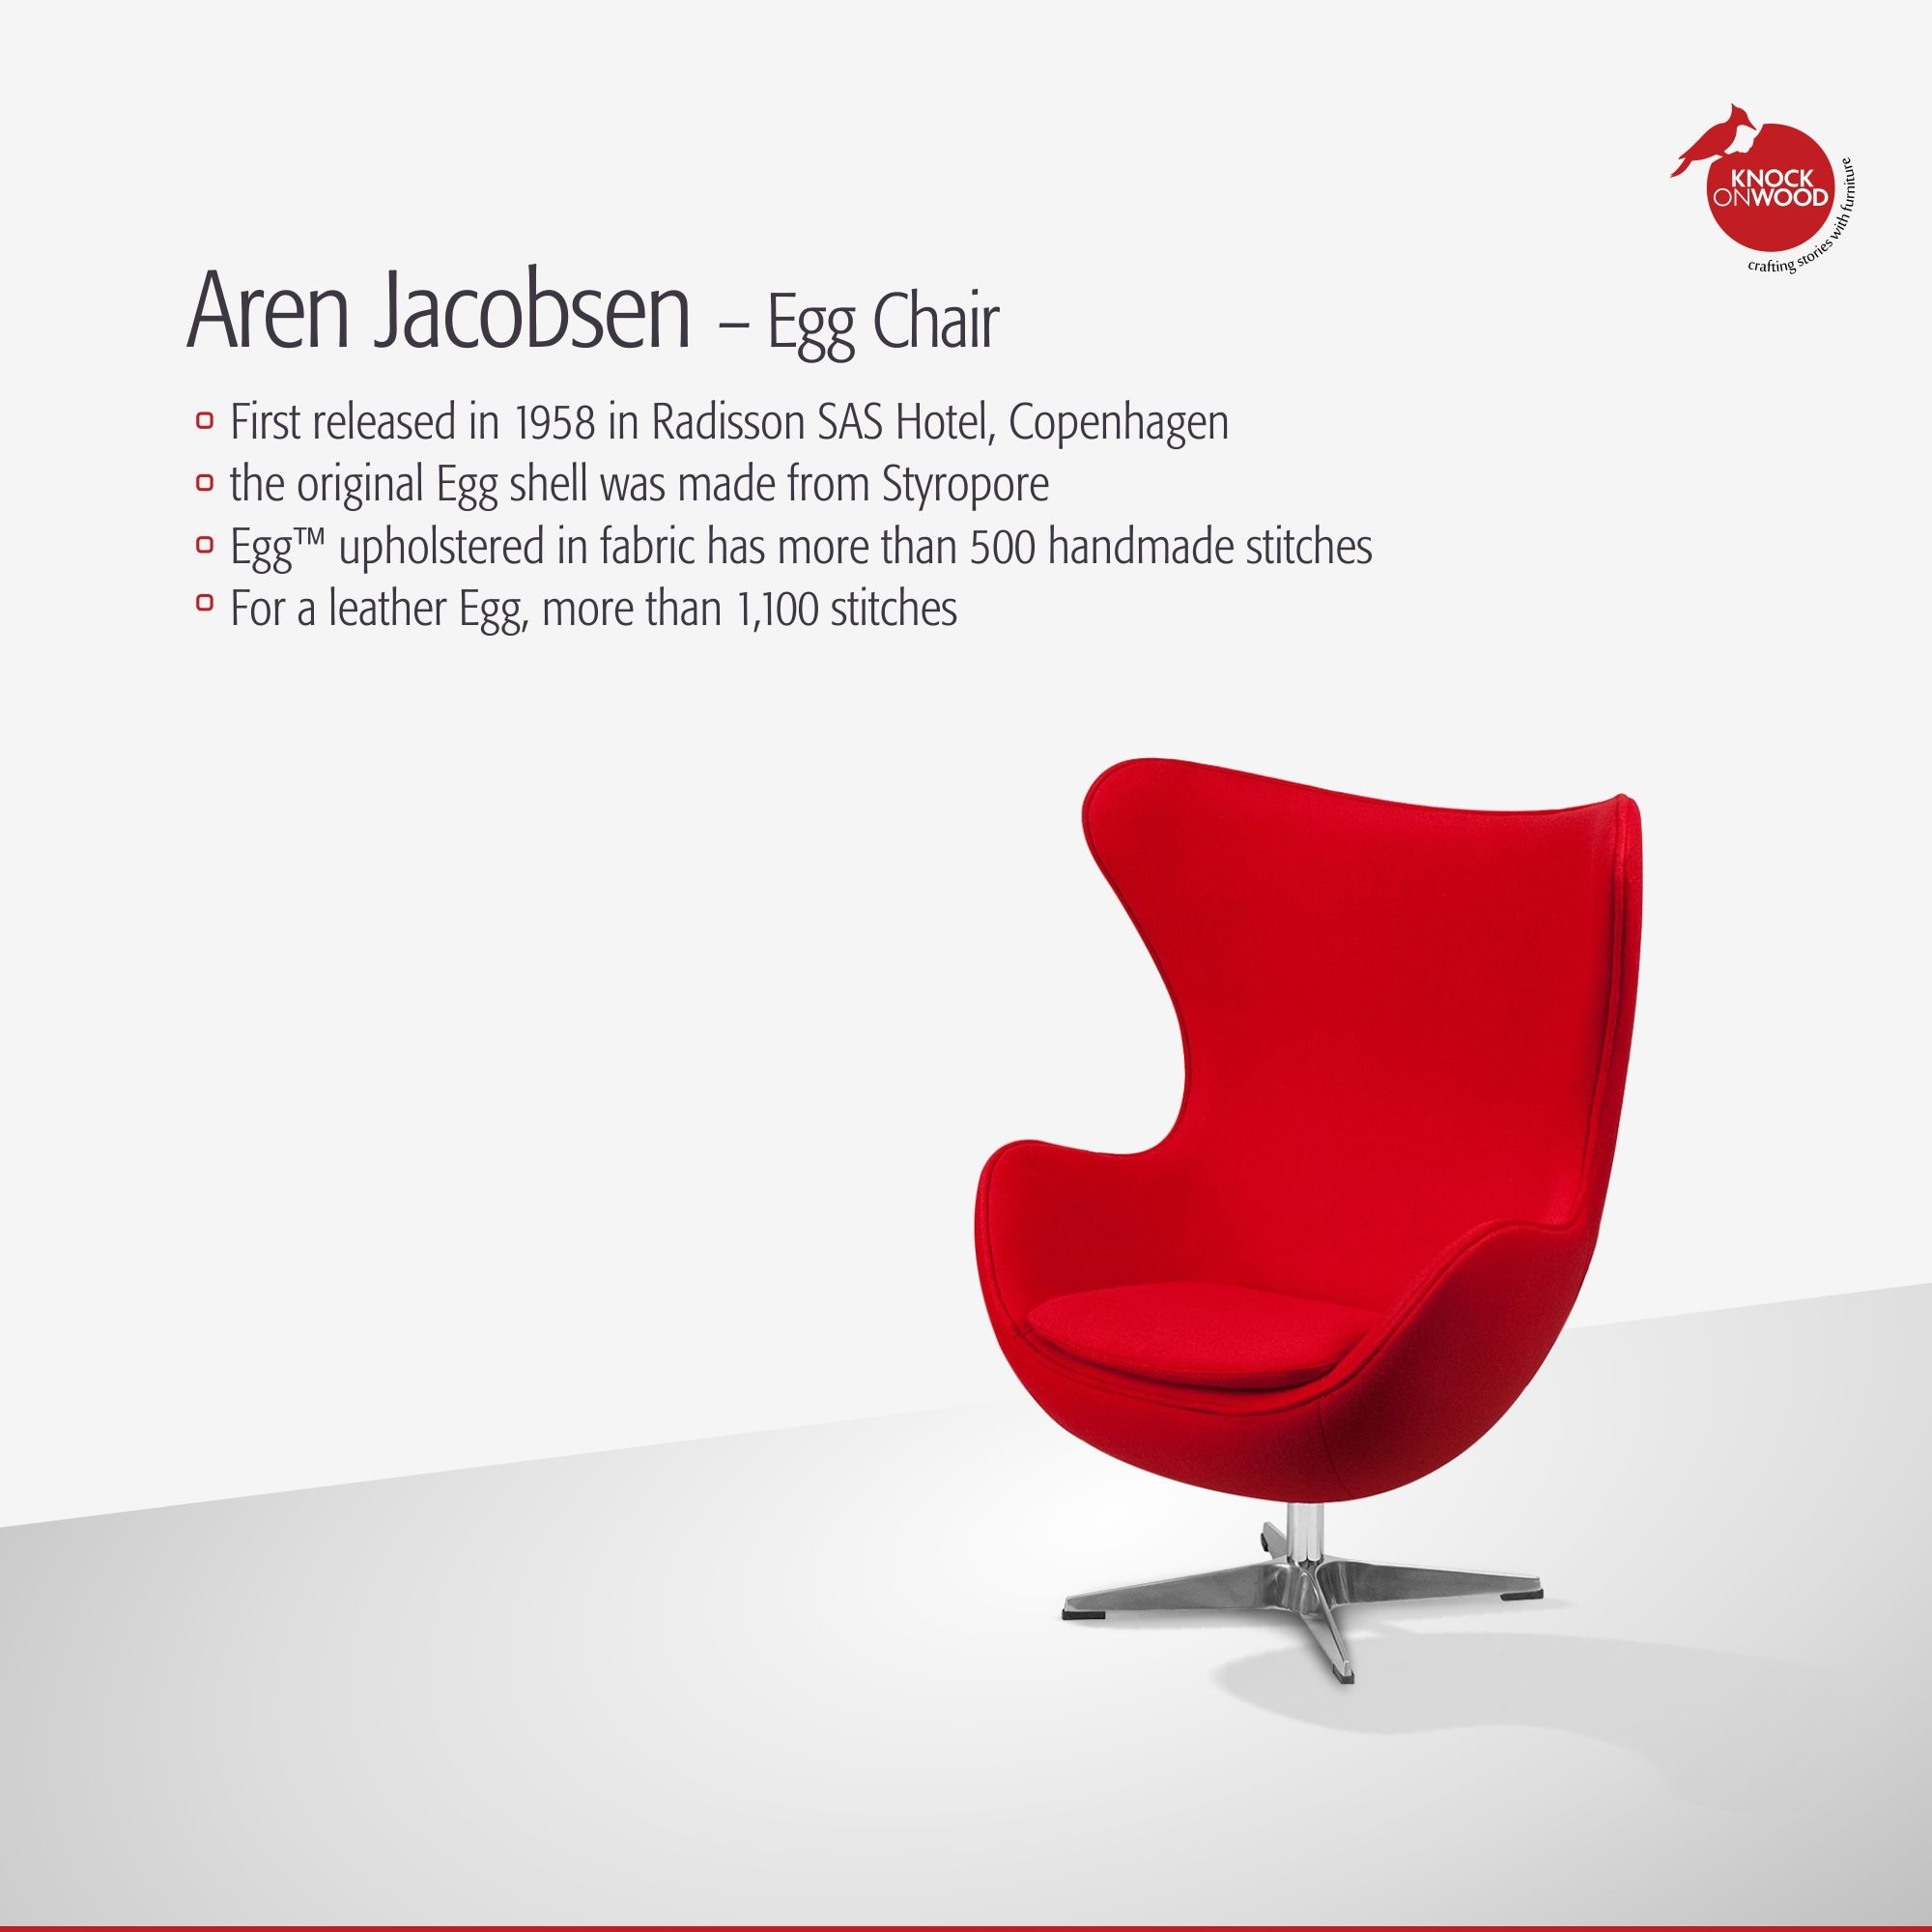 The Egg Chair Is Perhaps One Of The Most Famous And Iconic Chairs In